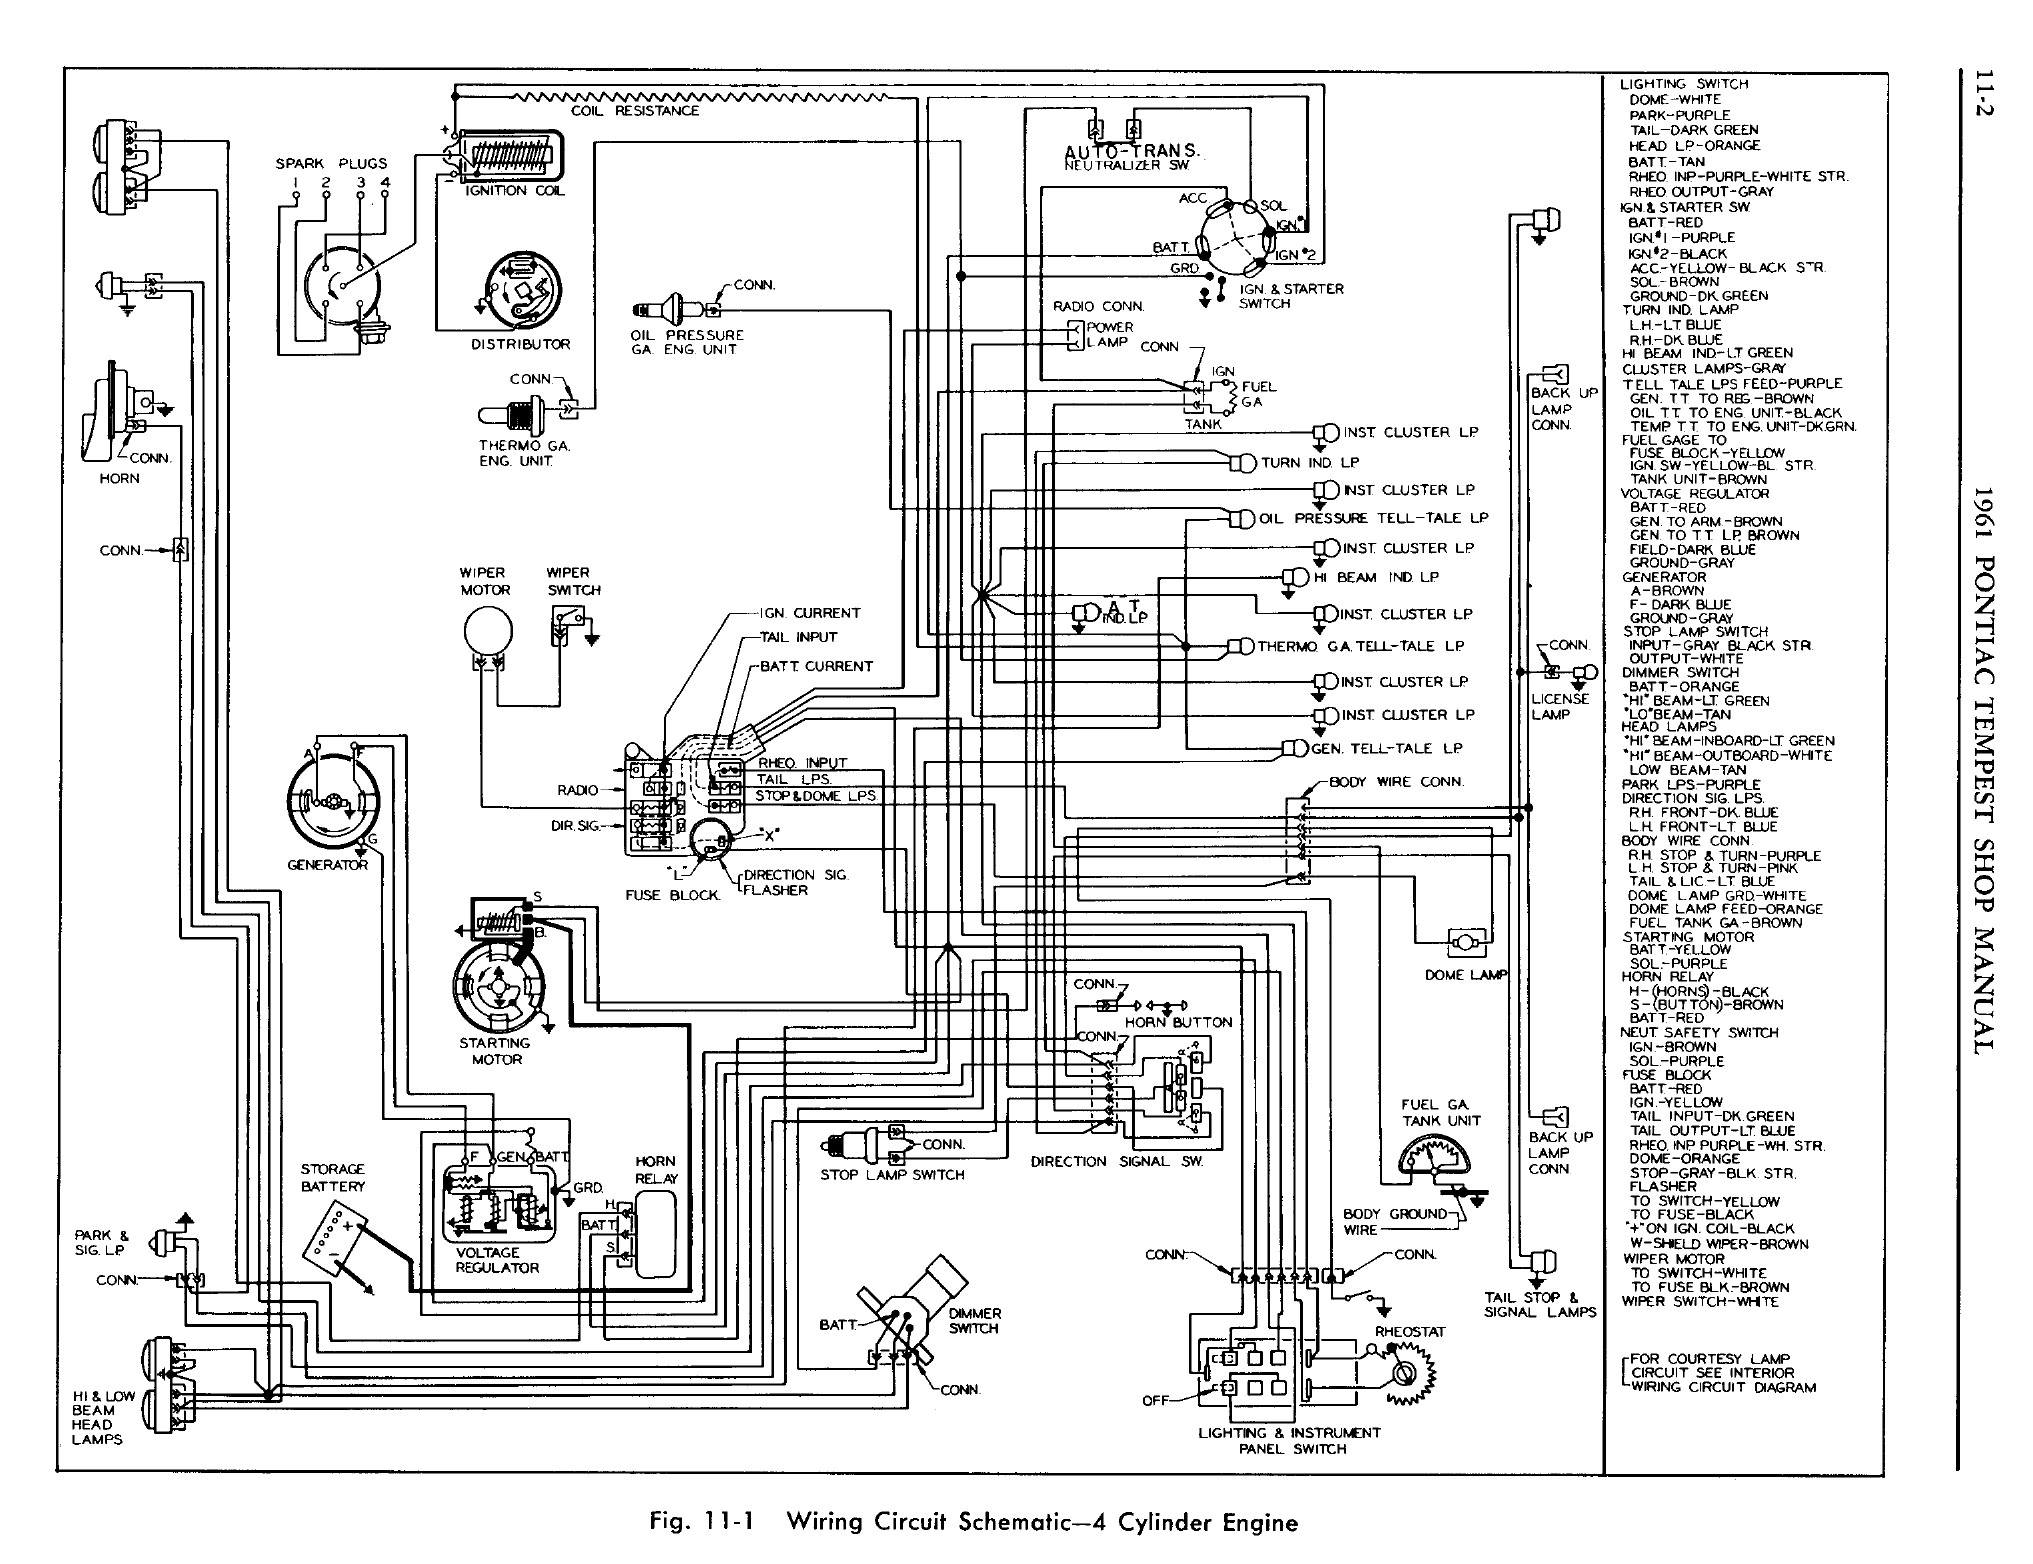 1961 Pontiac Tempest Shop Manual- Electrical Page 2 of 63